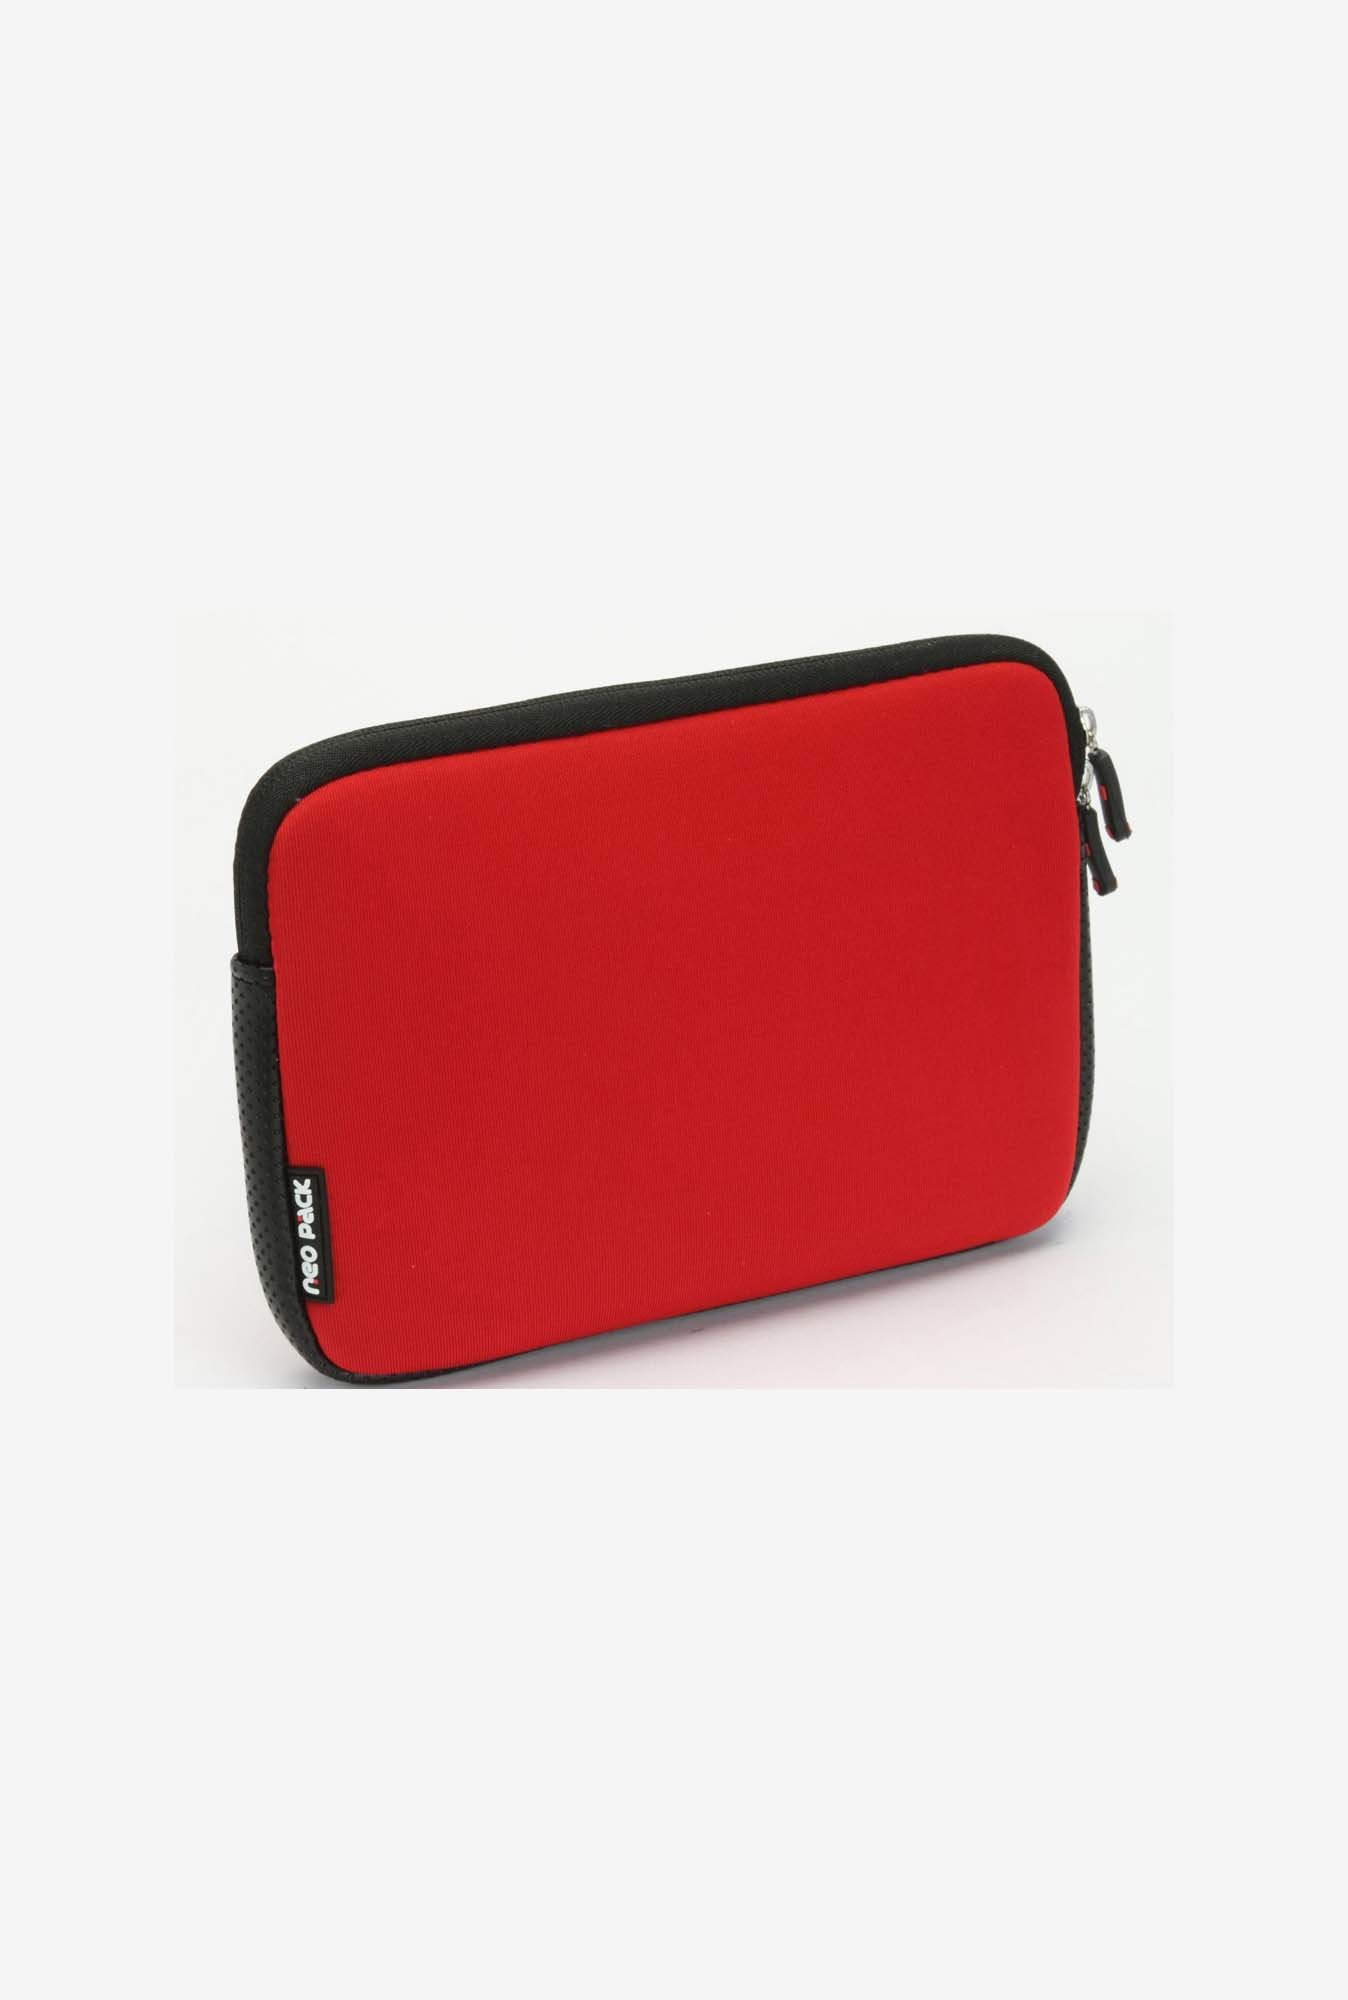 "Neopack Designer 2RD8 8"" Tablet Sleeve Red"